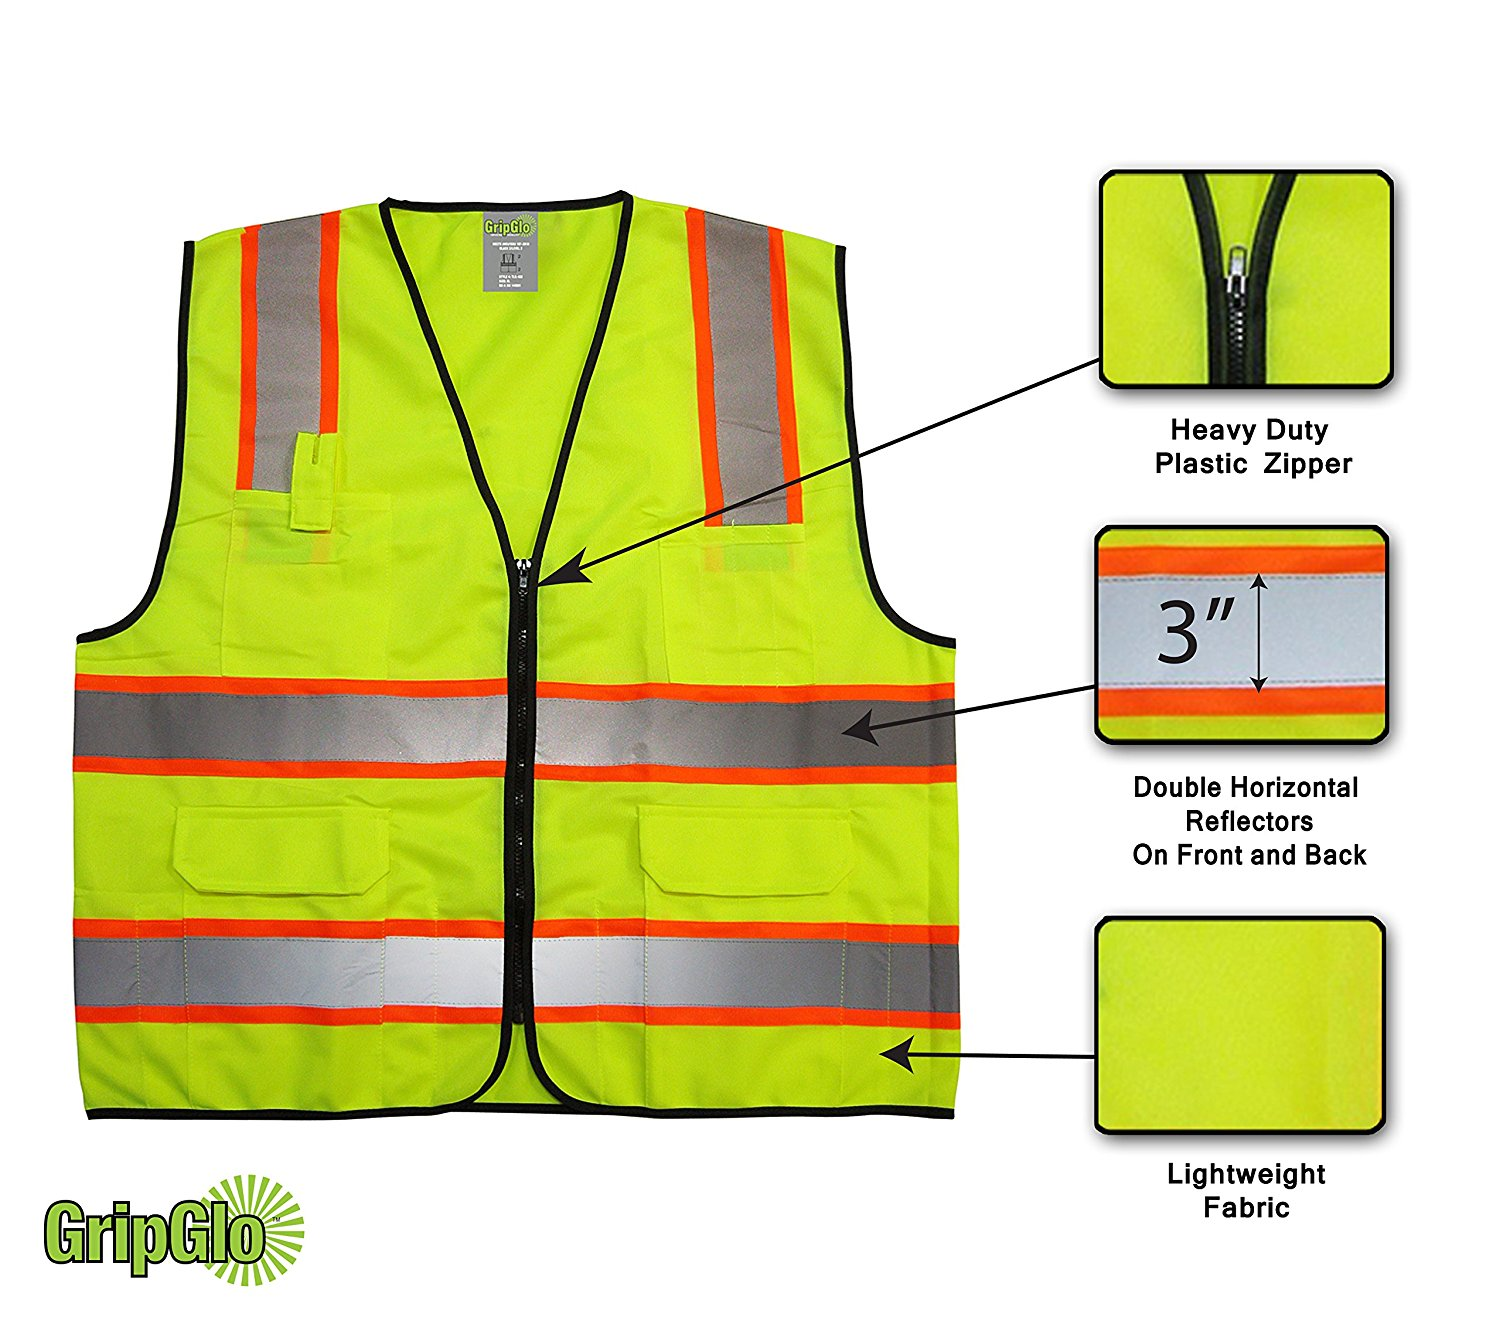 Large Multi-Pocket Neon Safety Vest with Reflective Strips Jacket Zipper ANSI